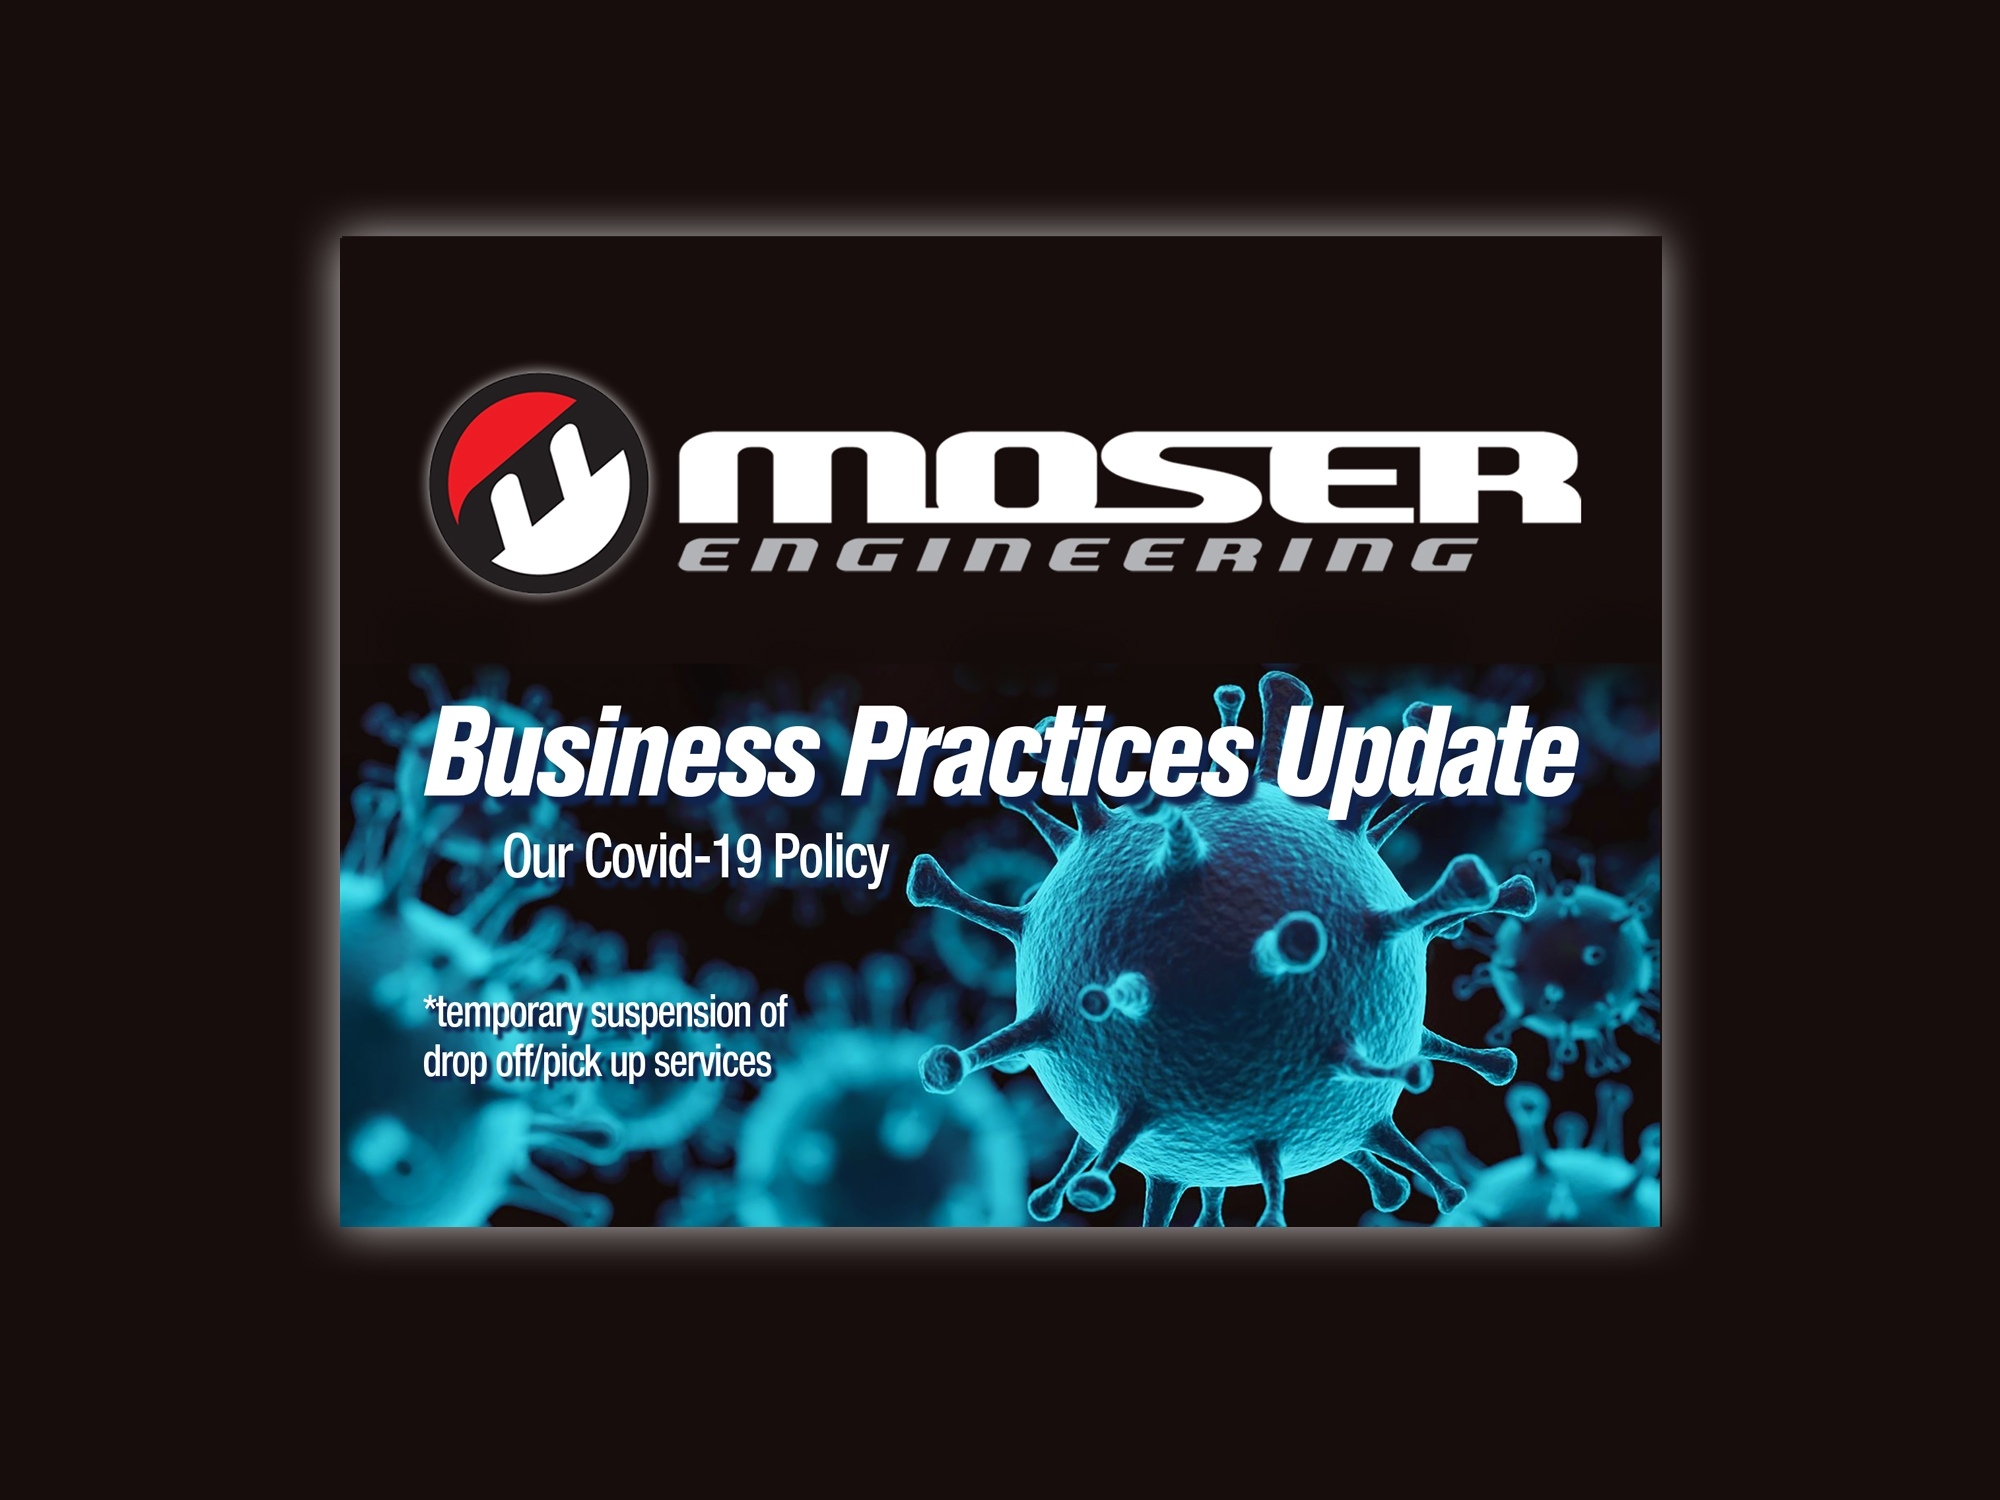 Business Practices Update